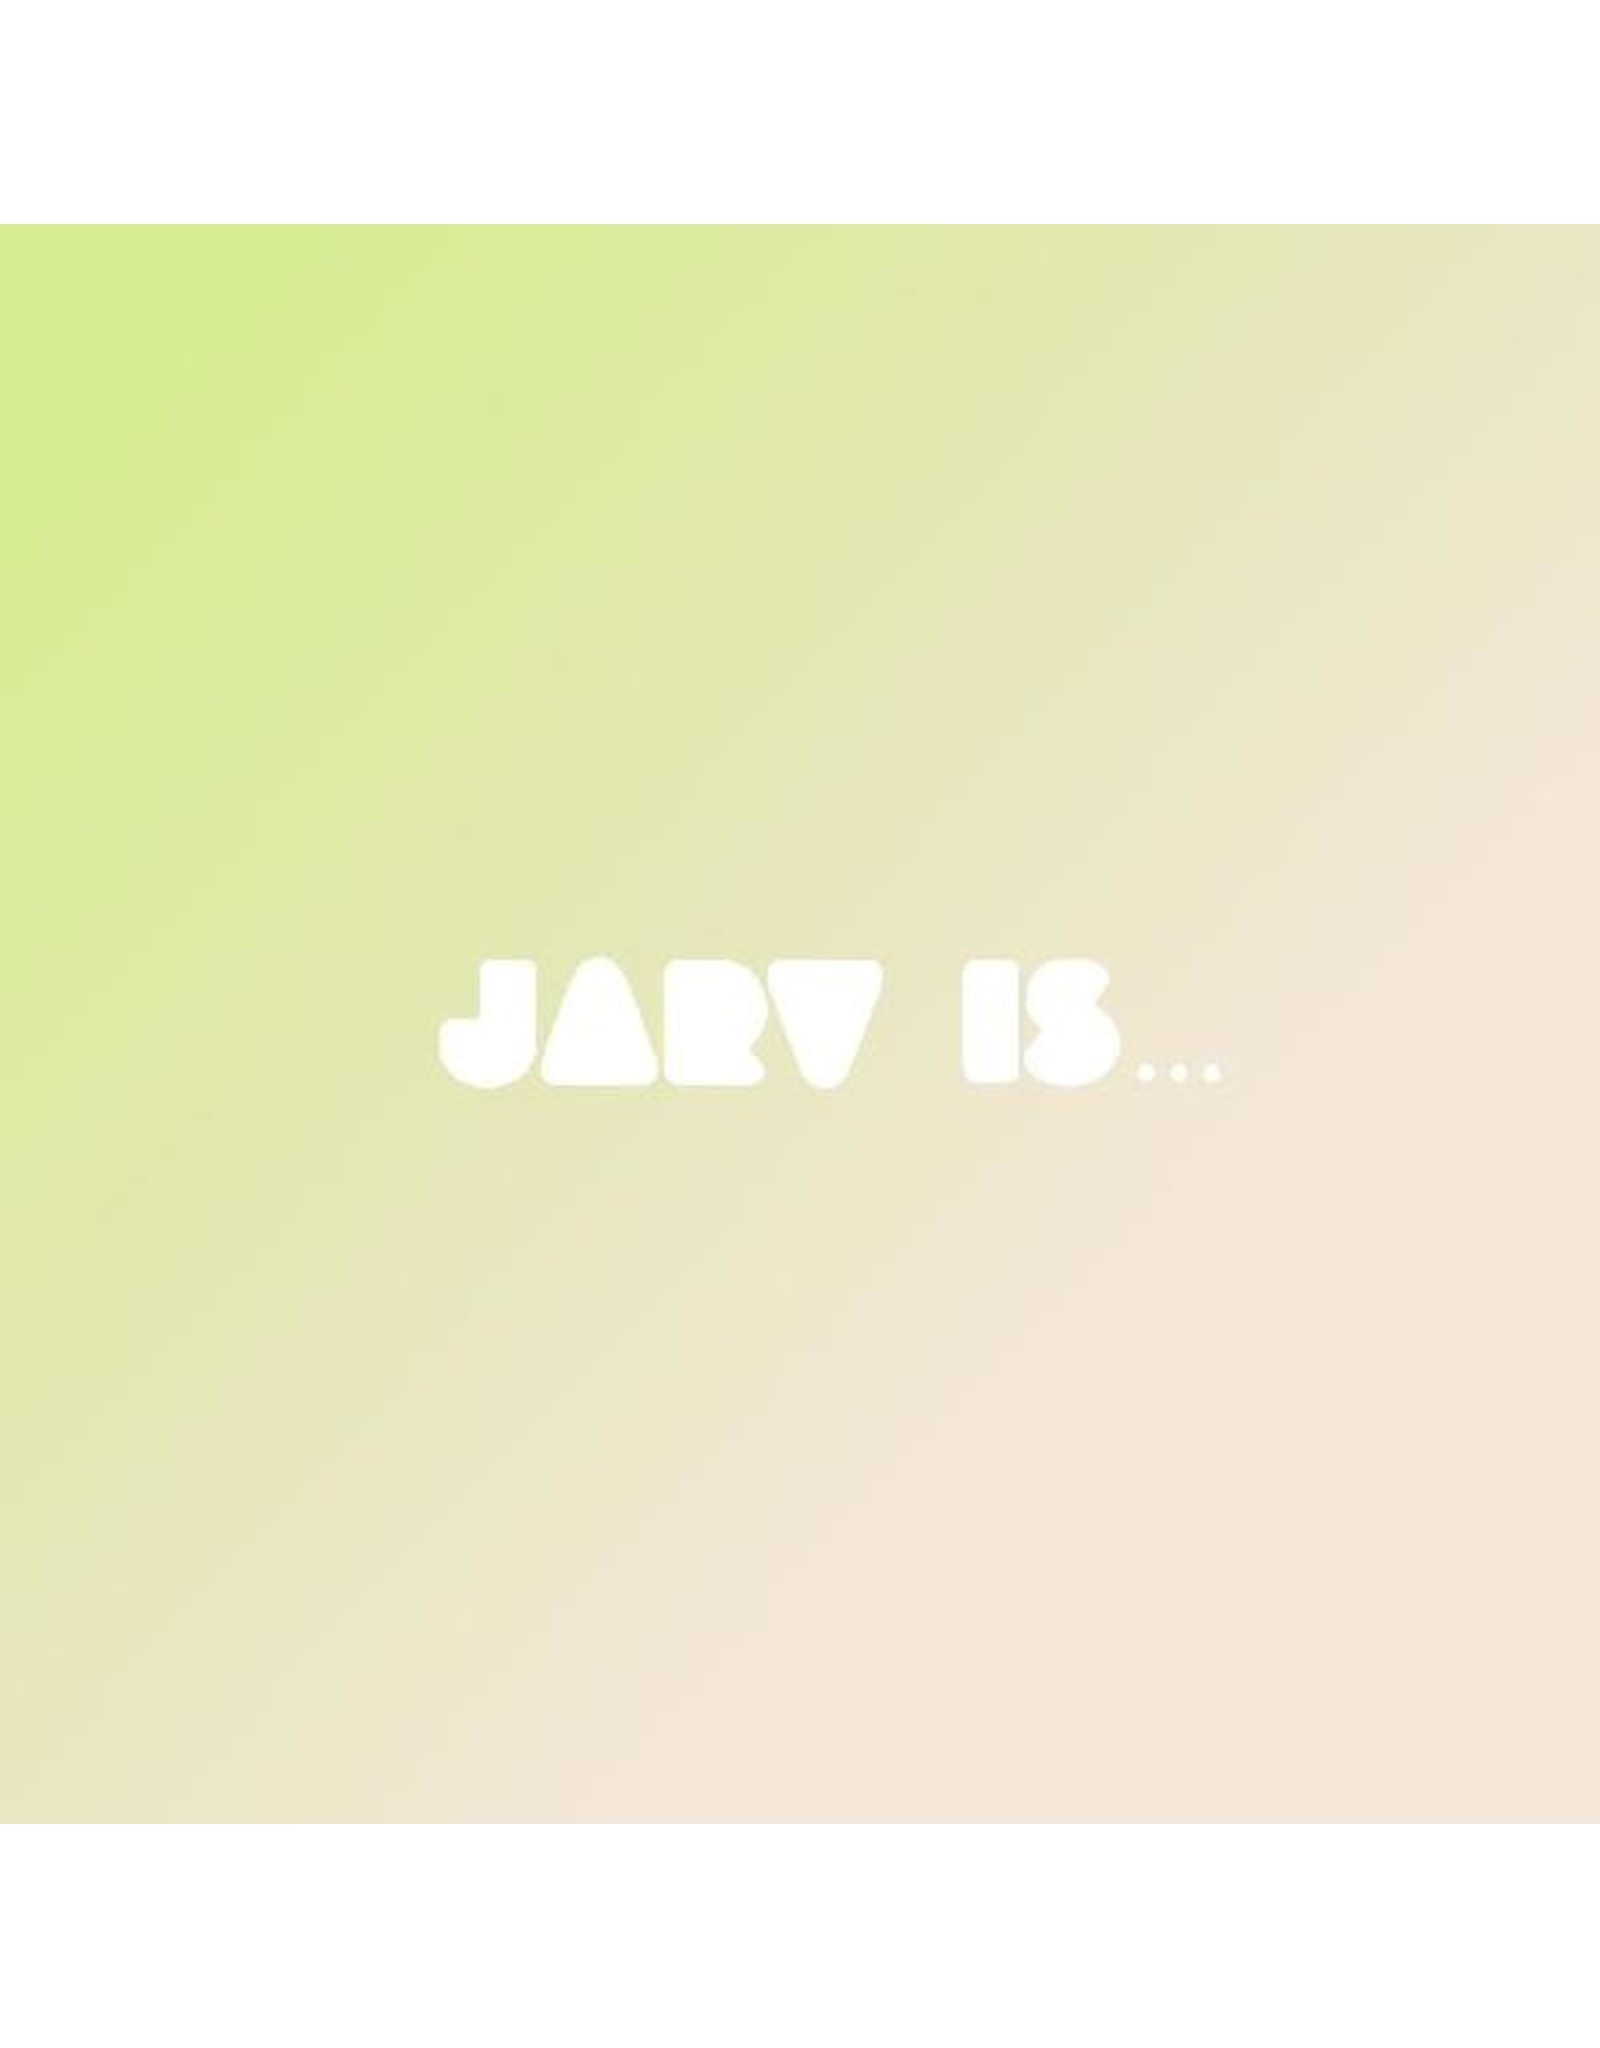 New Vinyl JARV IS... - Beyond the Pale (Deluxe, Colored) LP